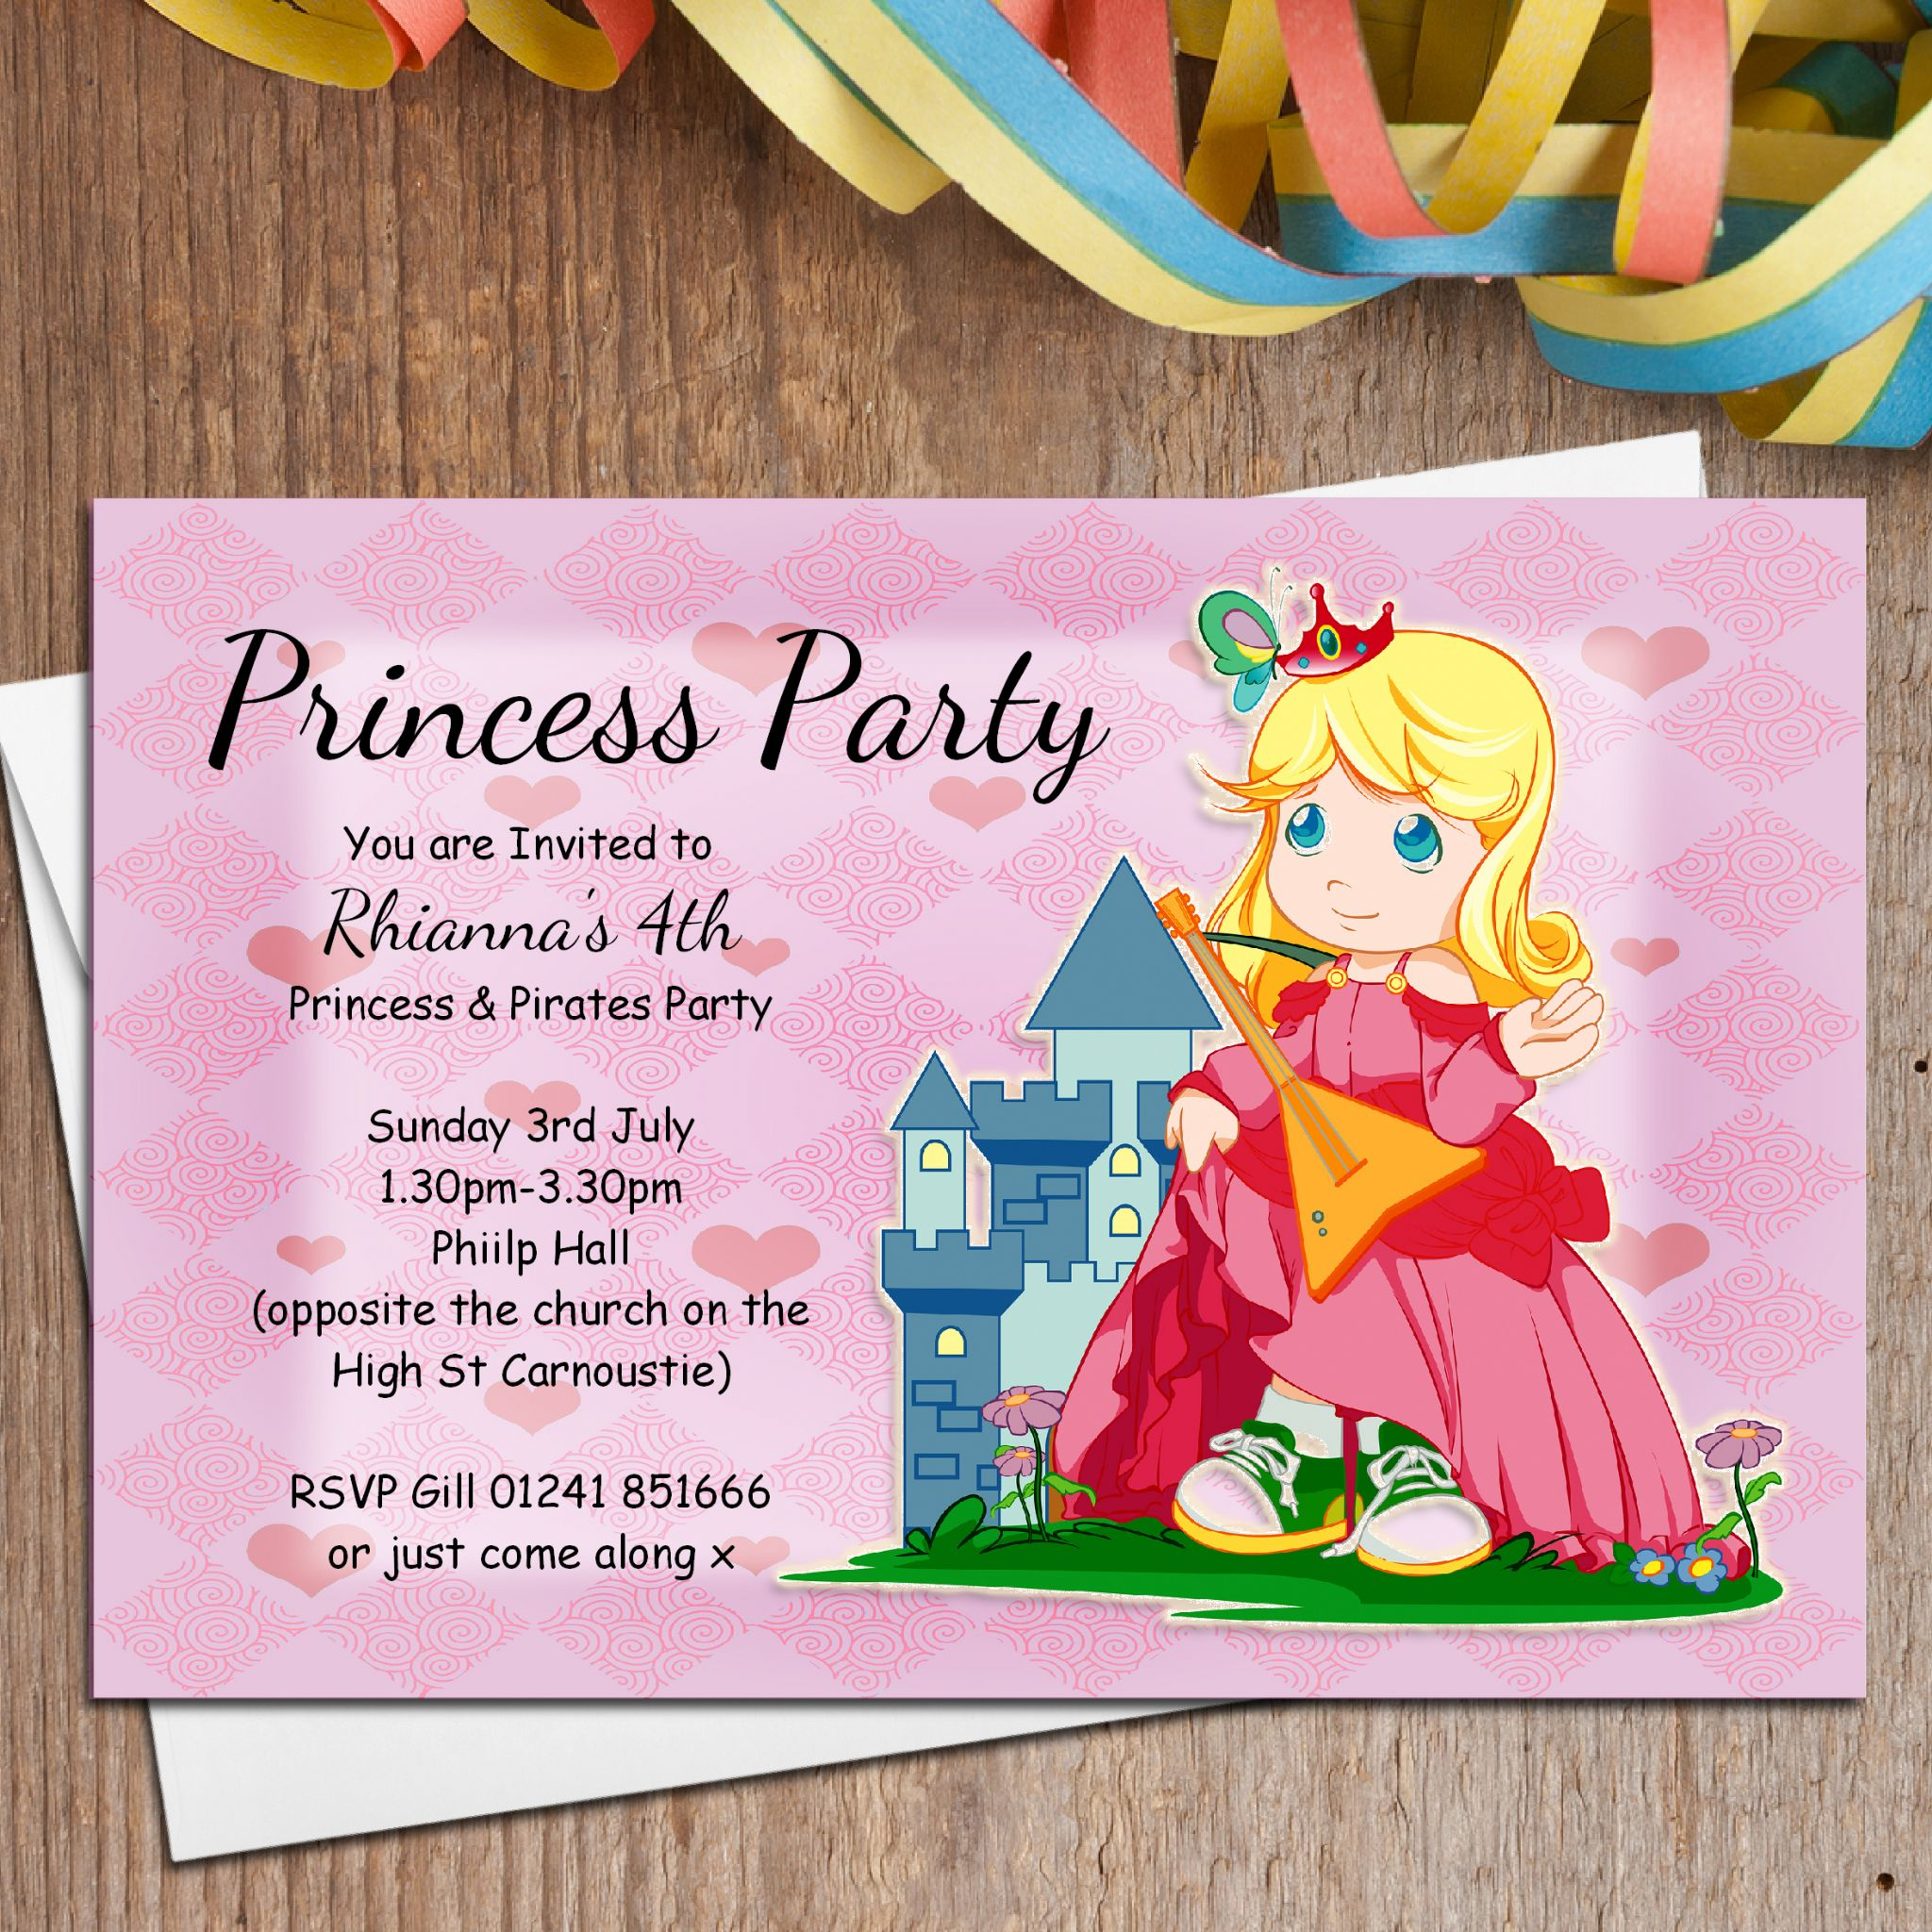 10 Personalised Princess Birthday Party Invitations – Princess and Pirates Party Invitations